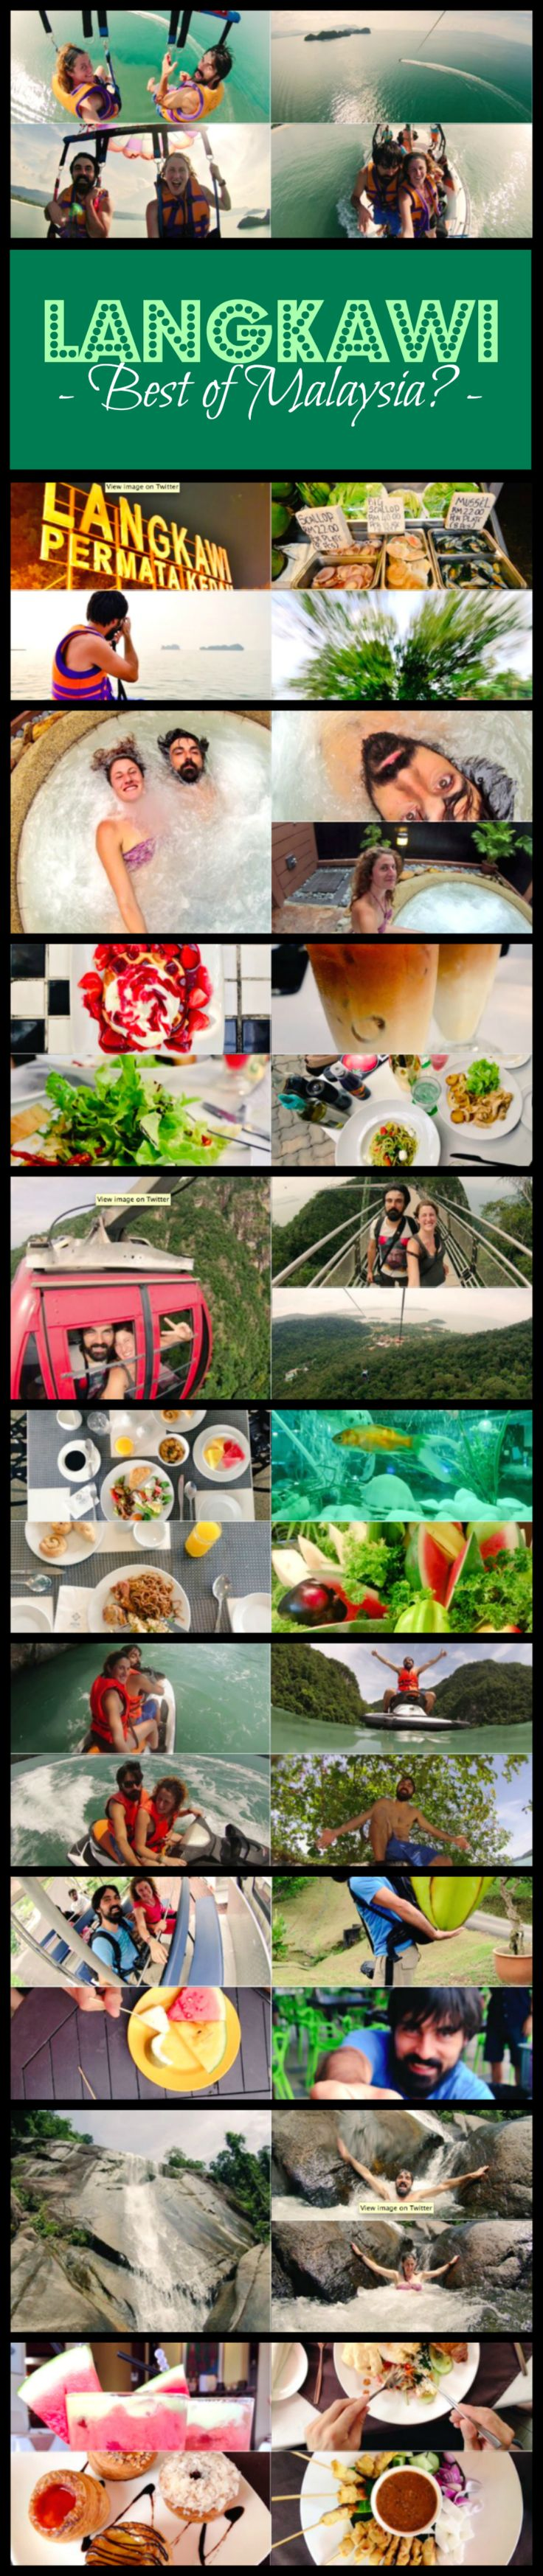 Is #Langkawi the best of #Malaysia? Is a visit to this Malaysian archipelago worth a visit, your time and money? Here's our experience in Langkawi, told live as we were roaming around it. It will help you decide whether to include Langkawi on your SE Asia travel plans or not. - A World to Travel